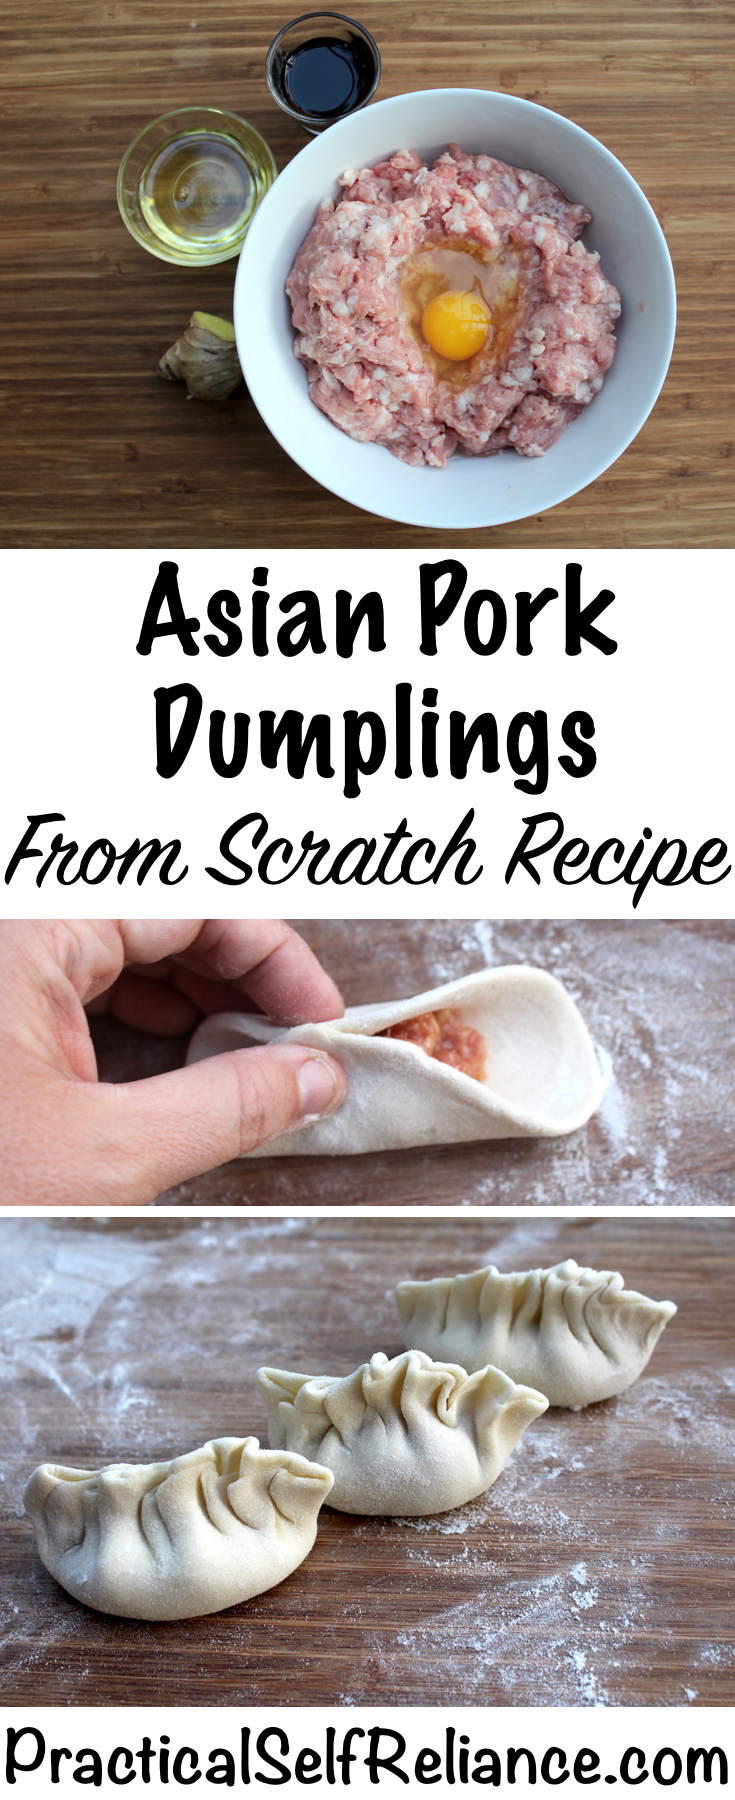 Asian Pork Dumplings - From Scratch Recipe with Homemade Dumpling Wrappers